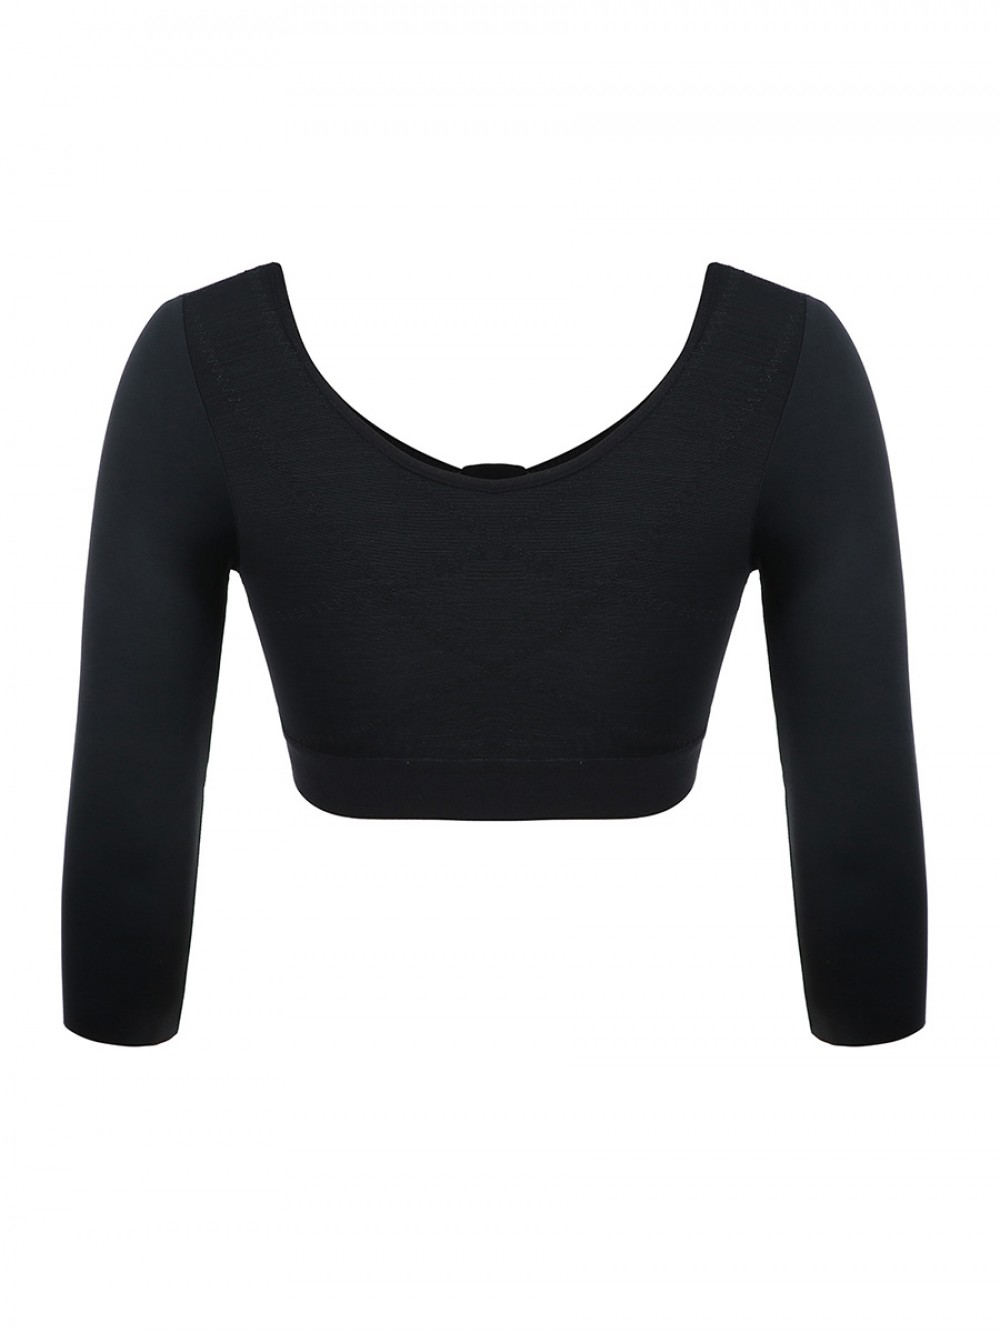 Black Front Zipper Shapewear Top Hollow Bust Slimming Arms